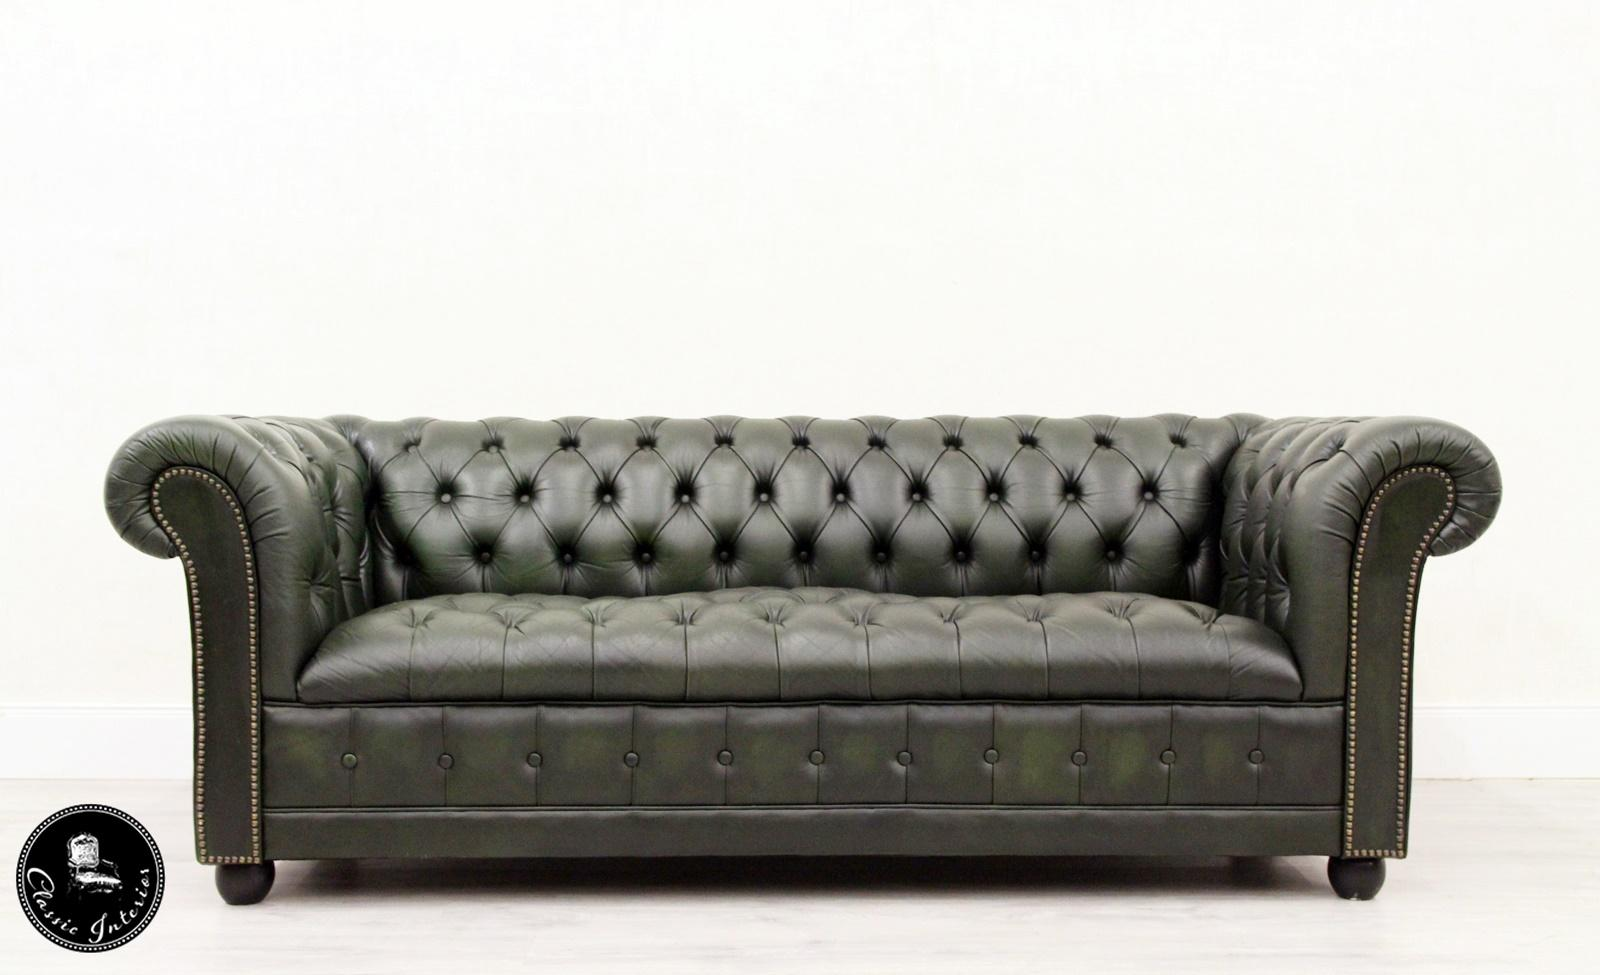 Couch Sessel Chesterfield Sofa Sessel Leder Antik Fernsehsessel English 3 2 1